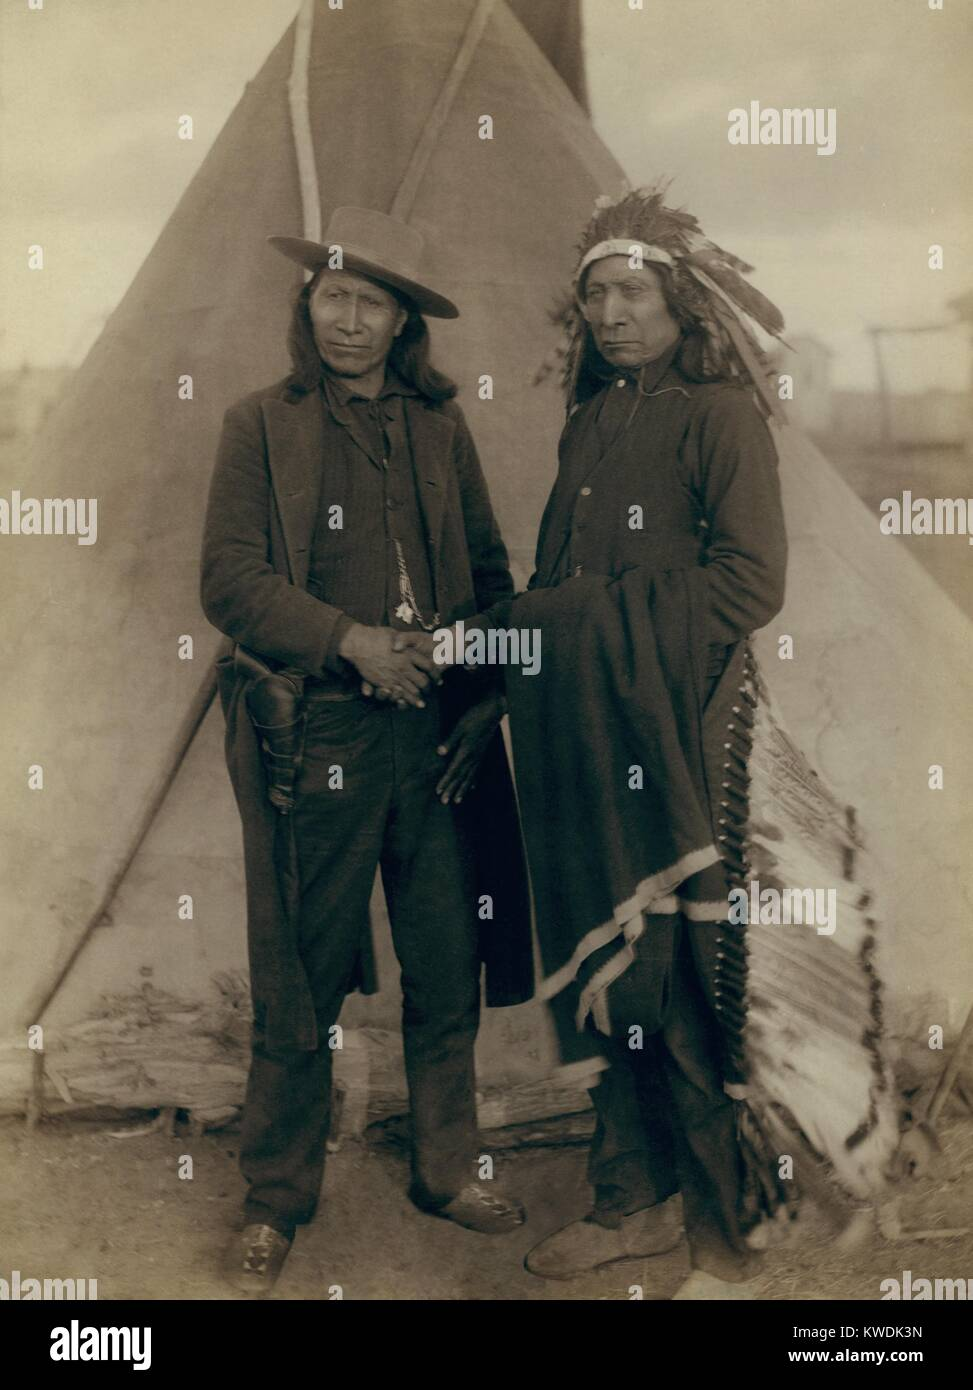 Red Cloud and American Horse, Oglala Lakota Chiefs, shortly after the Wounded Knee Massacre. American Horse, in - Stock Image